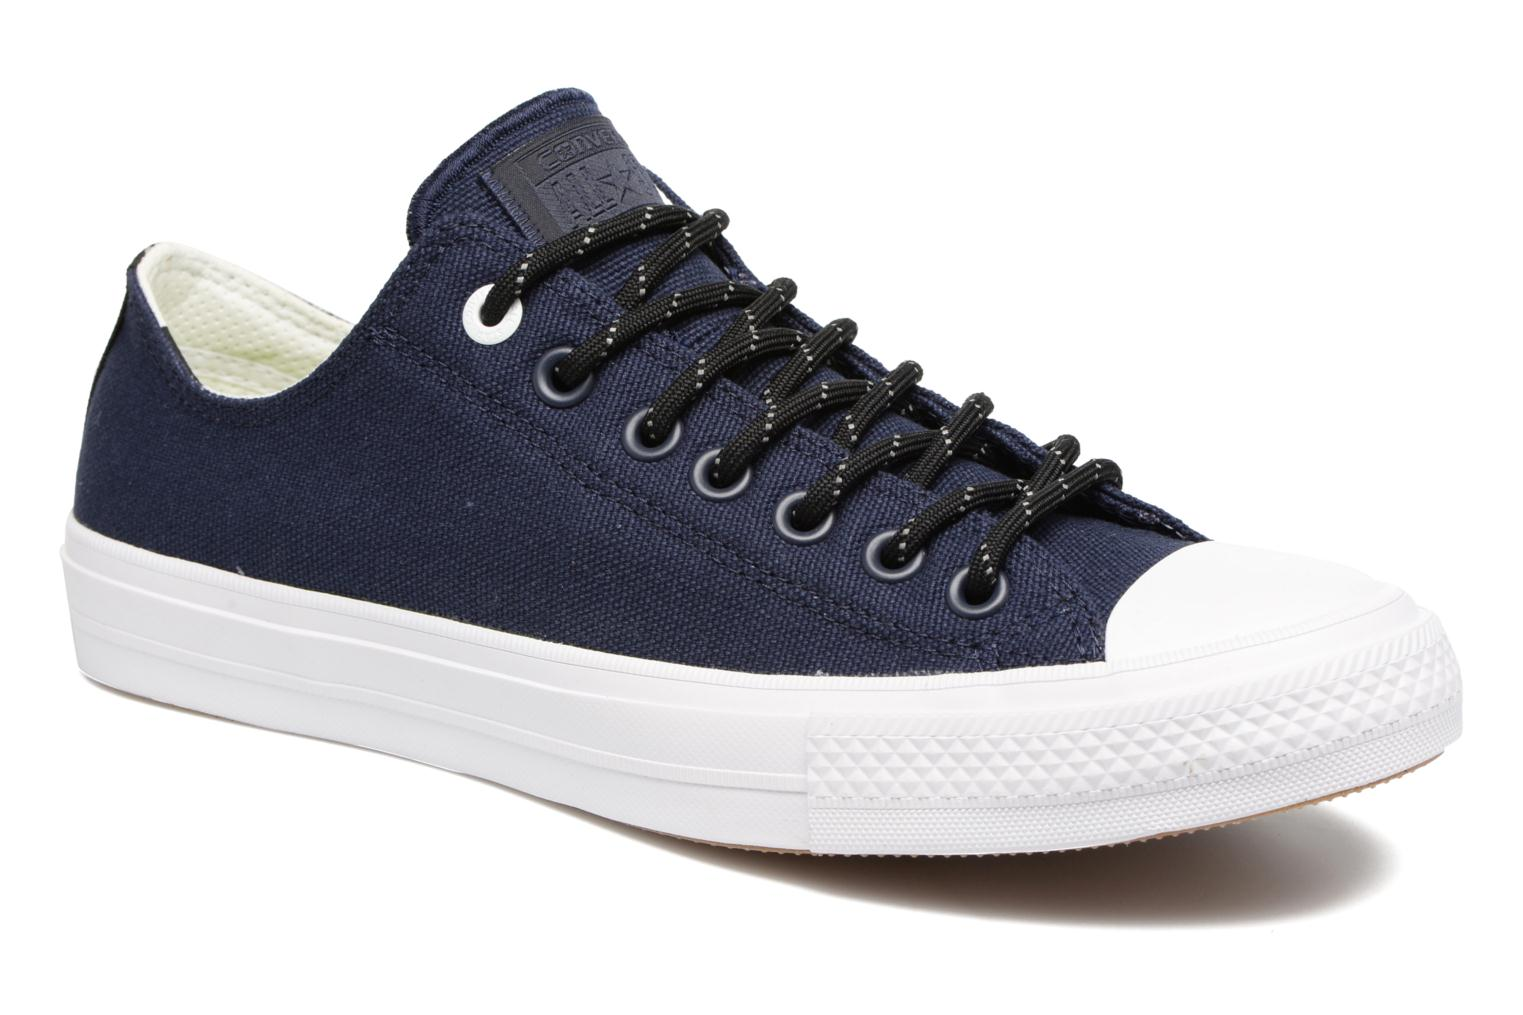 converse chuck taylor all star descent quilted leather ox w